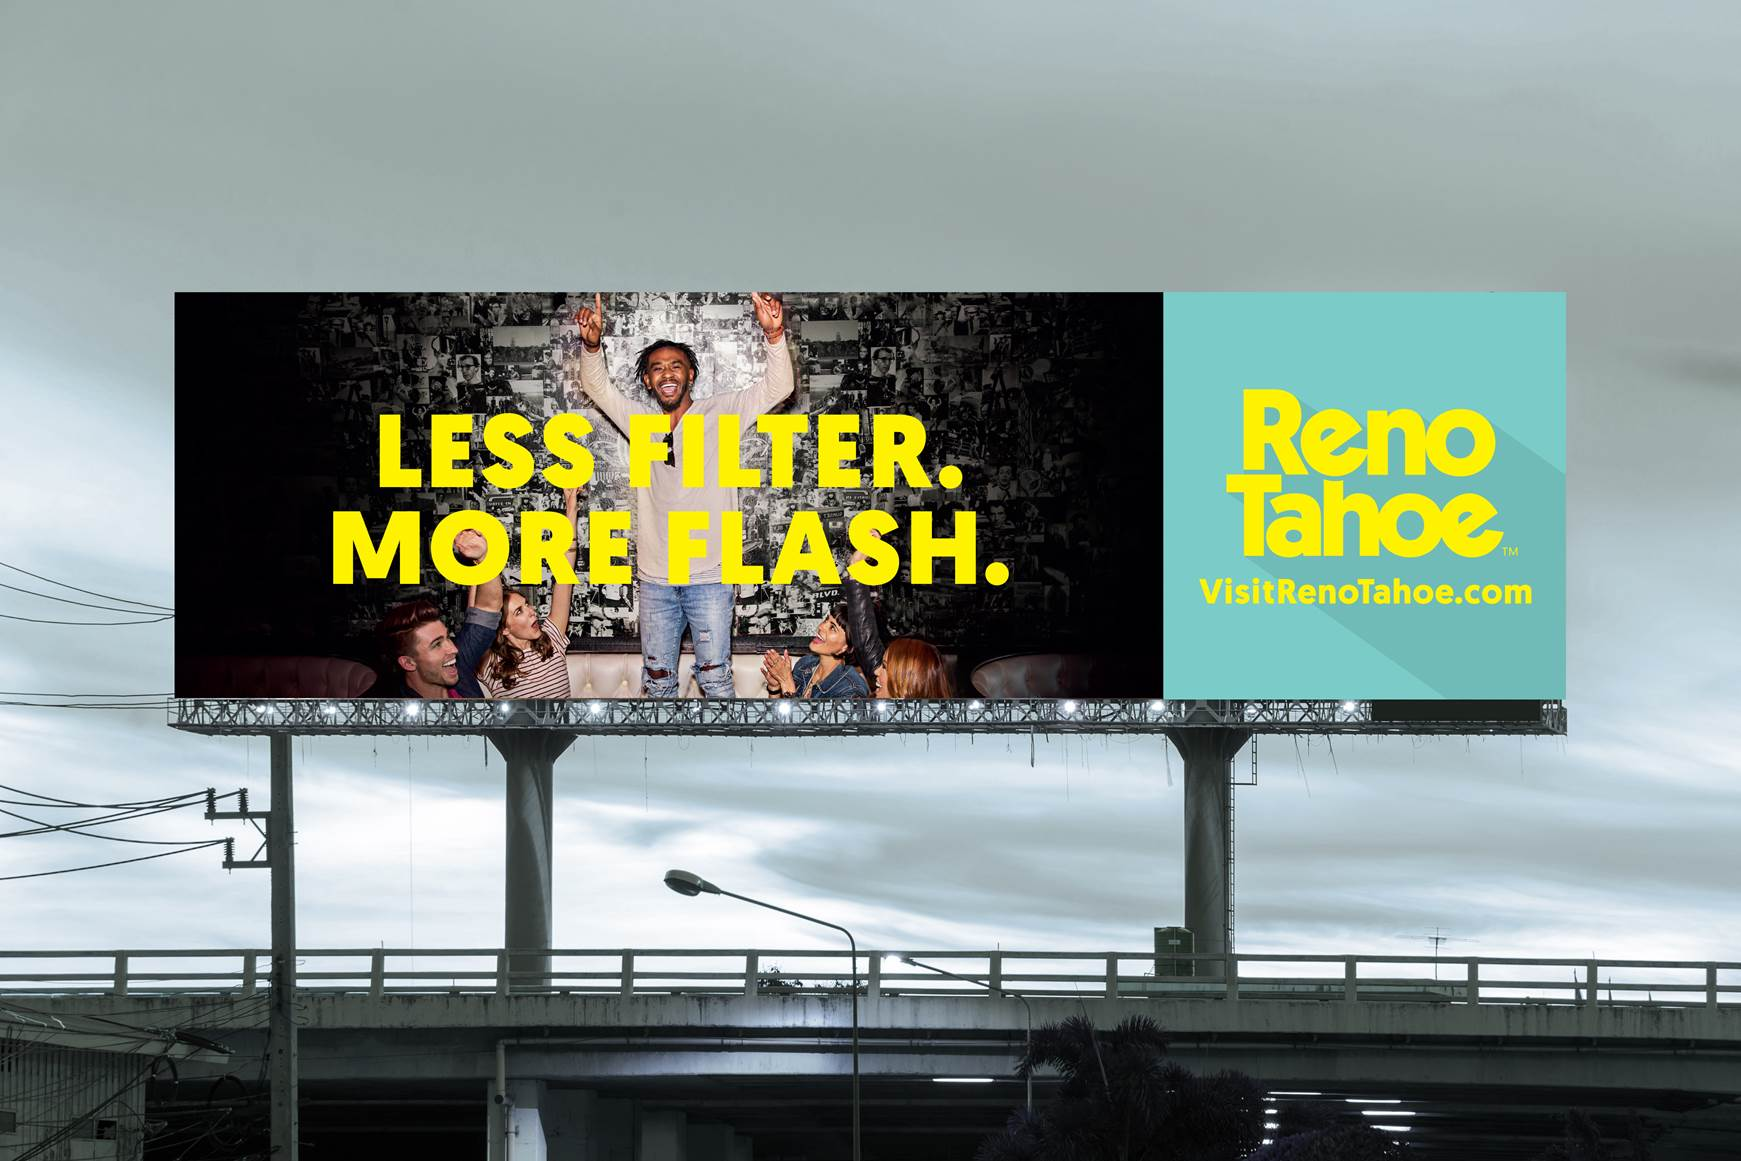 """LESS FILTER, MORE FLASH"" is one of the billboards that will be seen throughout the Bay Area, Los Angeles and Seattle area."